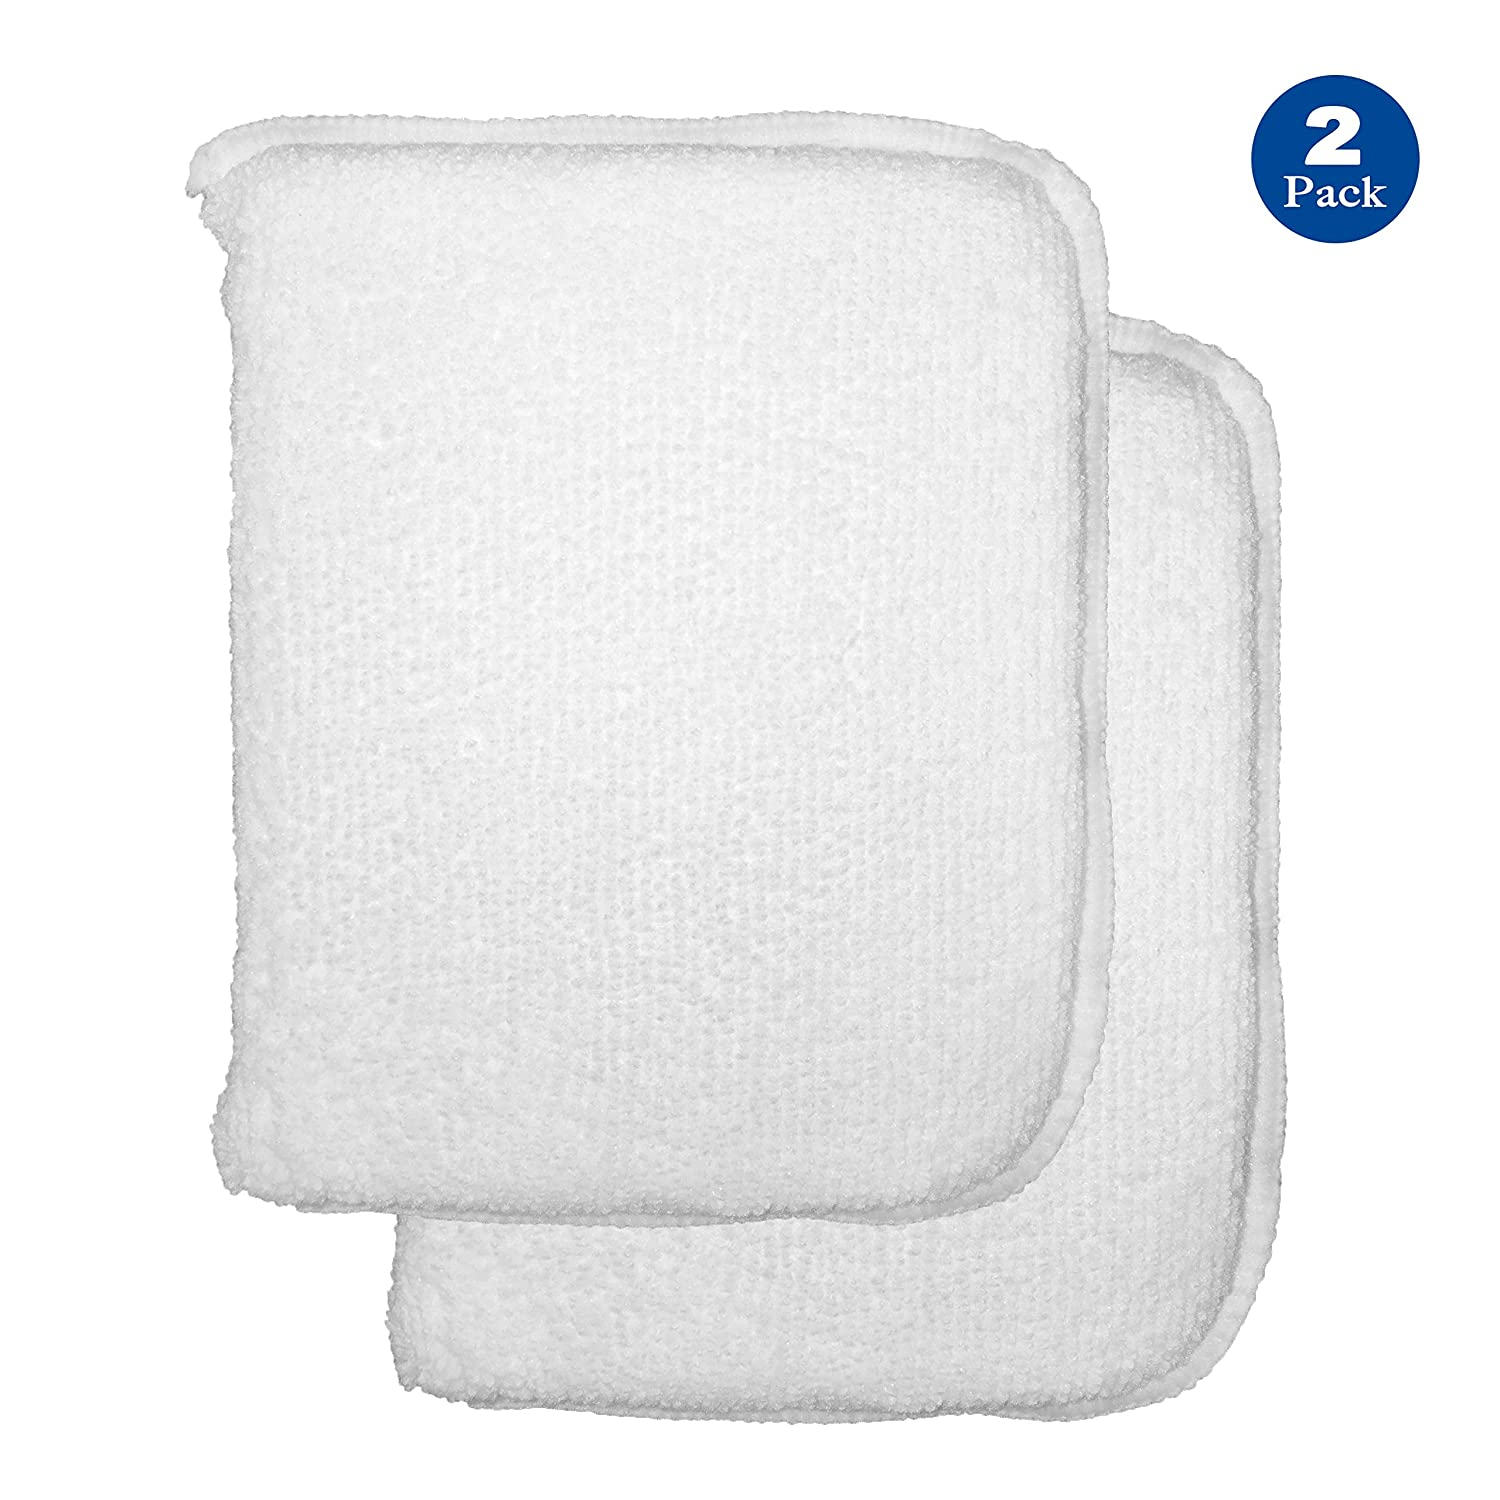 Stella Sealants Professional Sealer Applicator Pad (2 Pack) - for Marble Granite Stone Travertine Countertop Shower Tile and Grout (Improved)